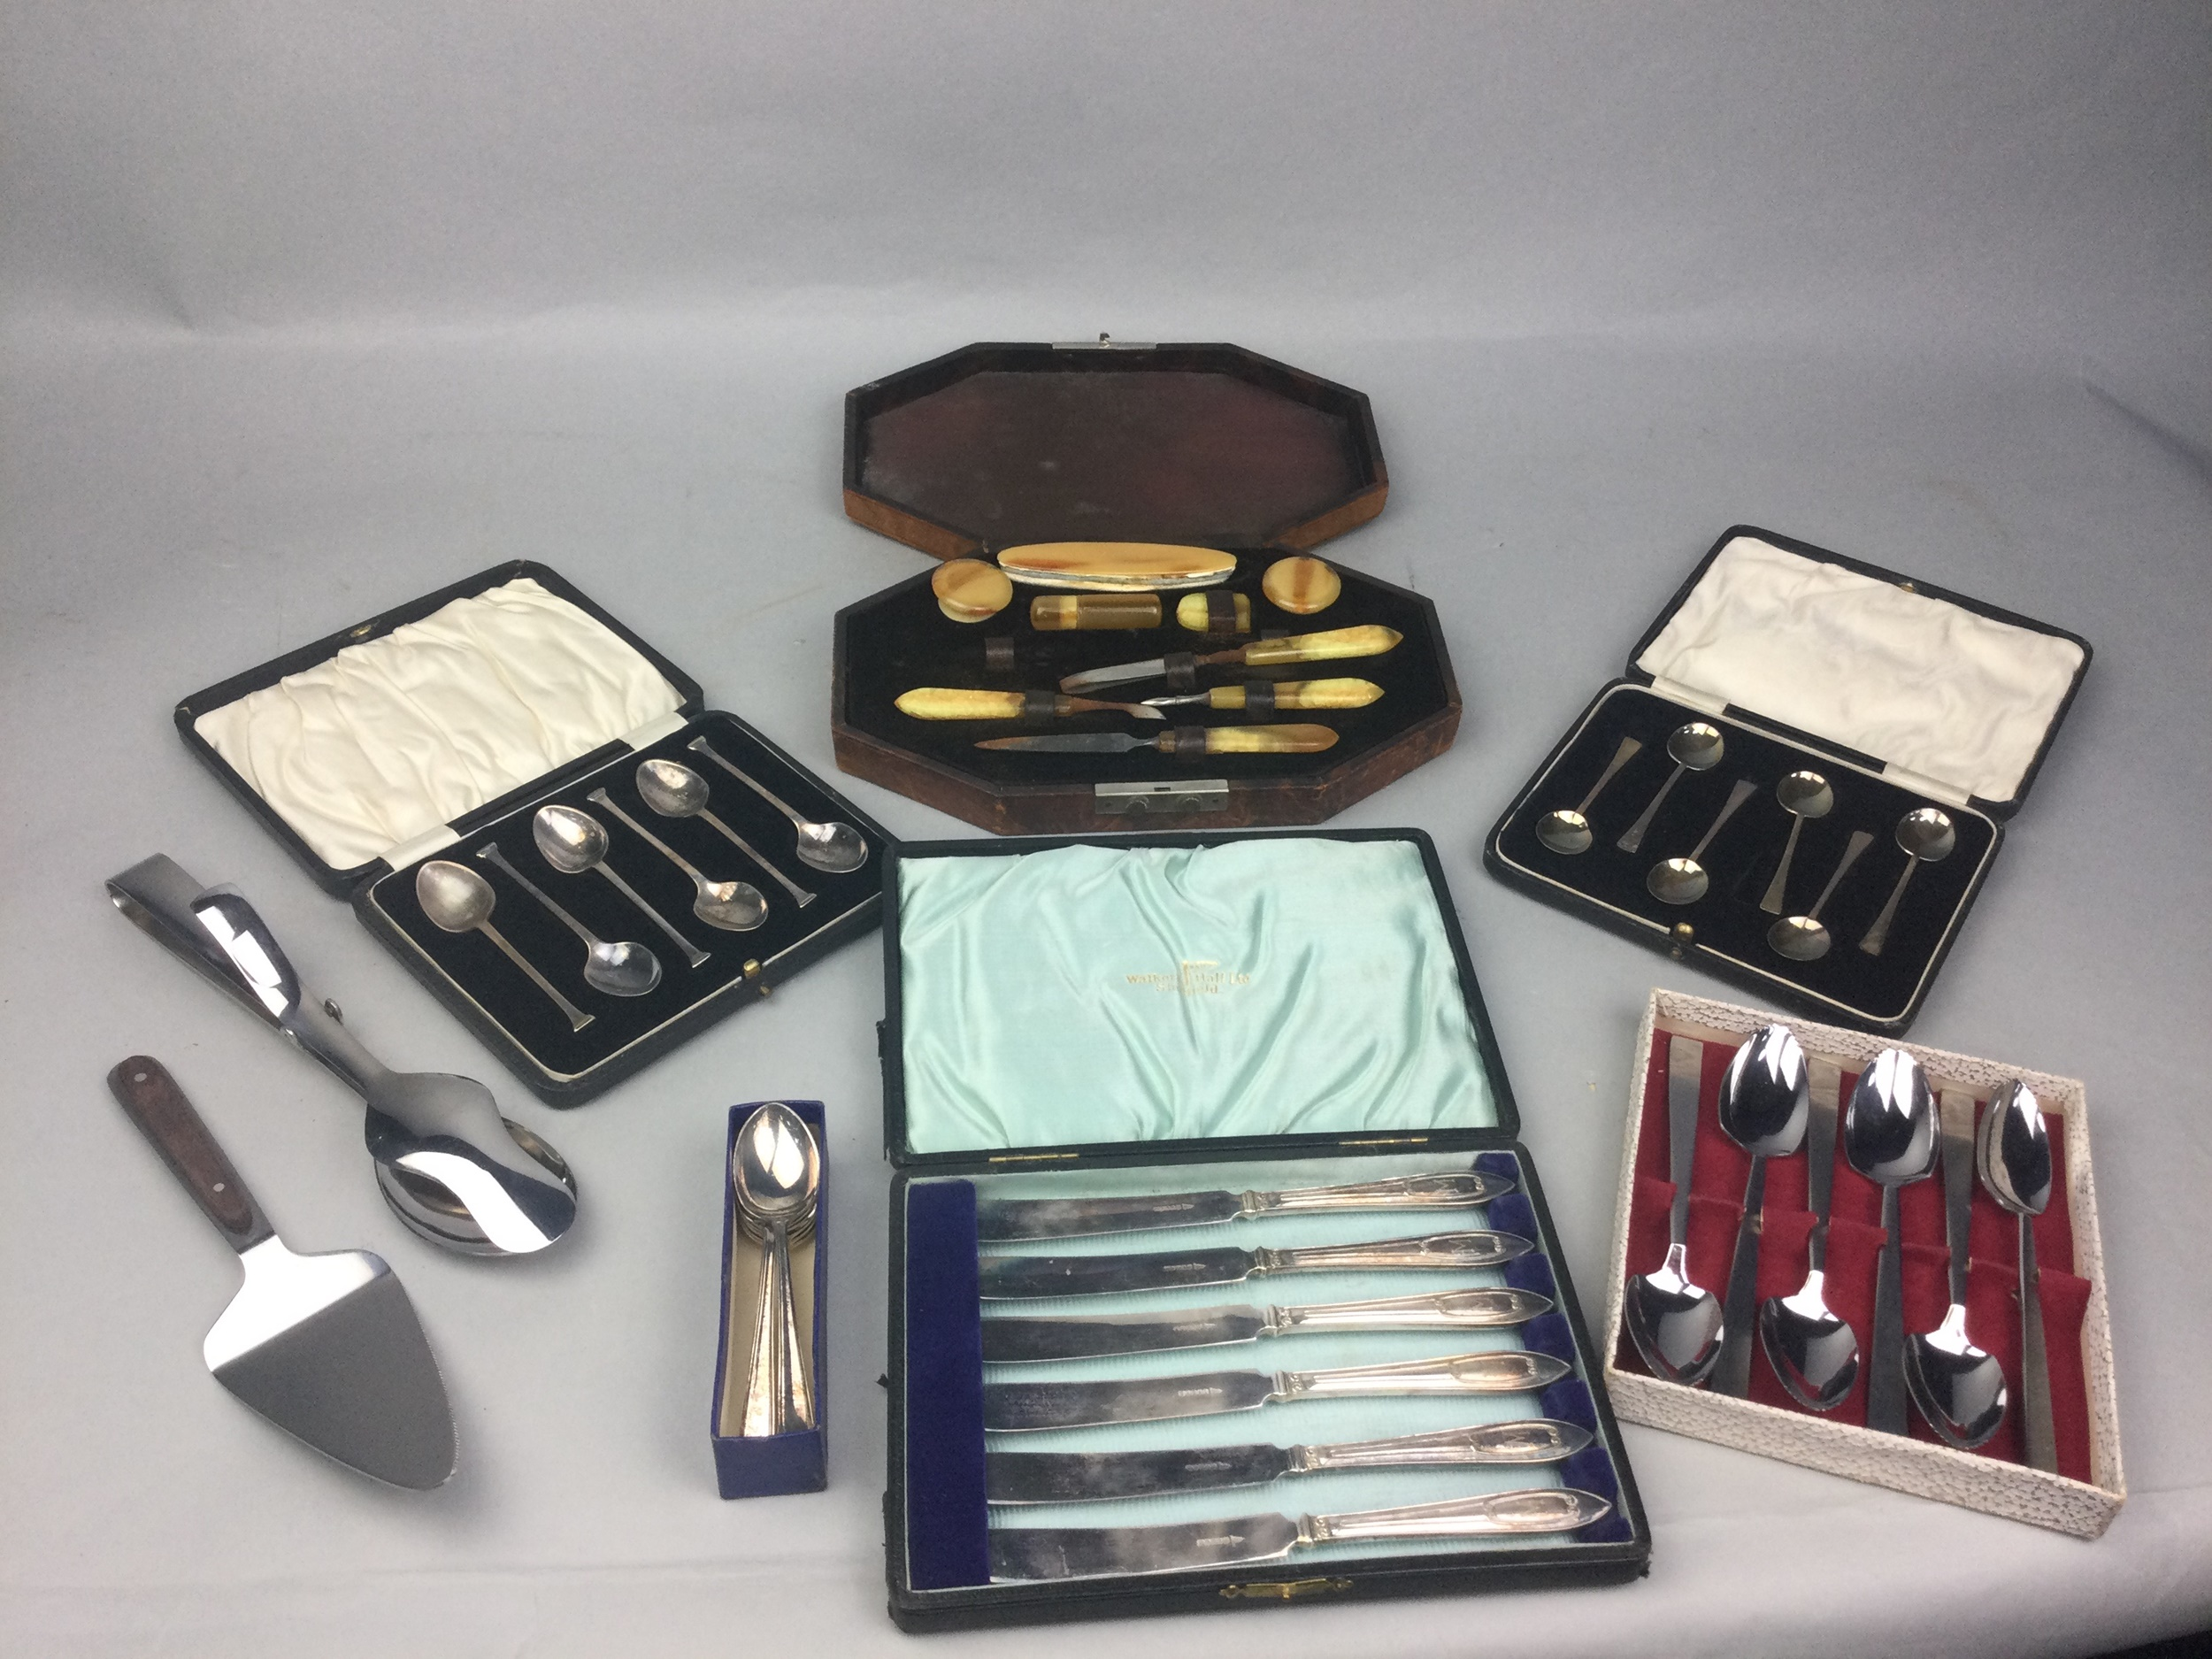 AN OAK CANTEEN OF SILVER PLATED CUTLERY AND OTHER CUTLERY - Image 2 of 2